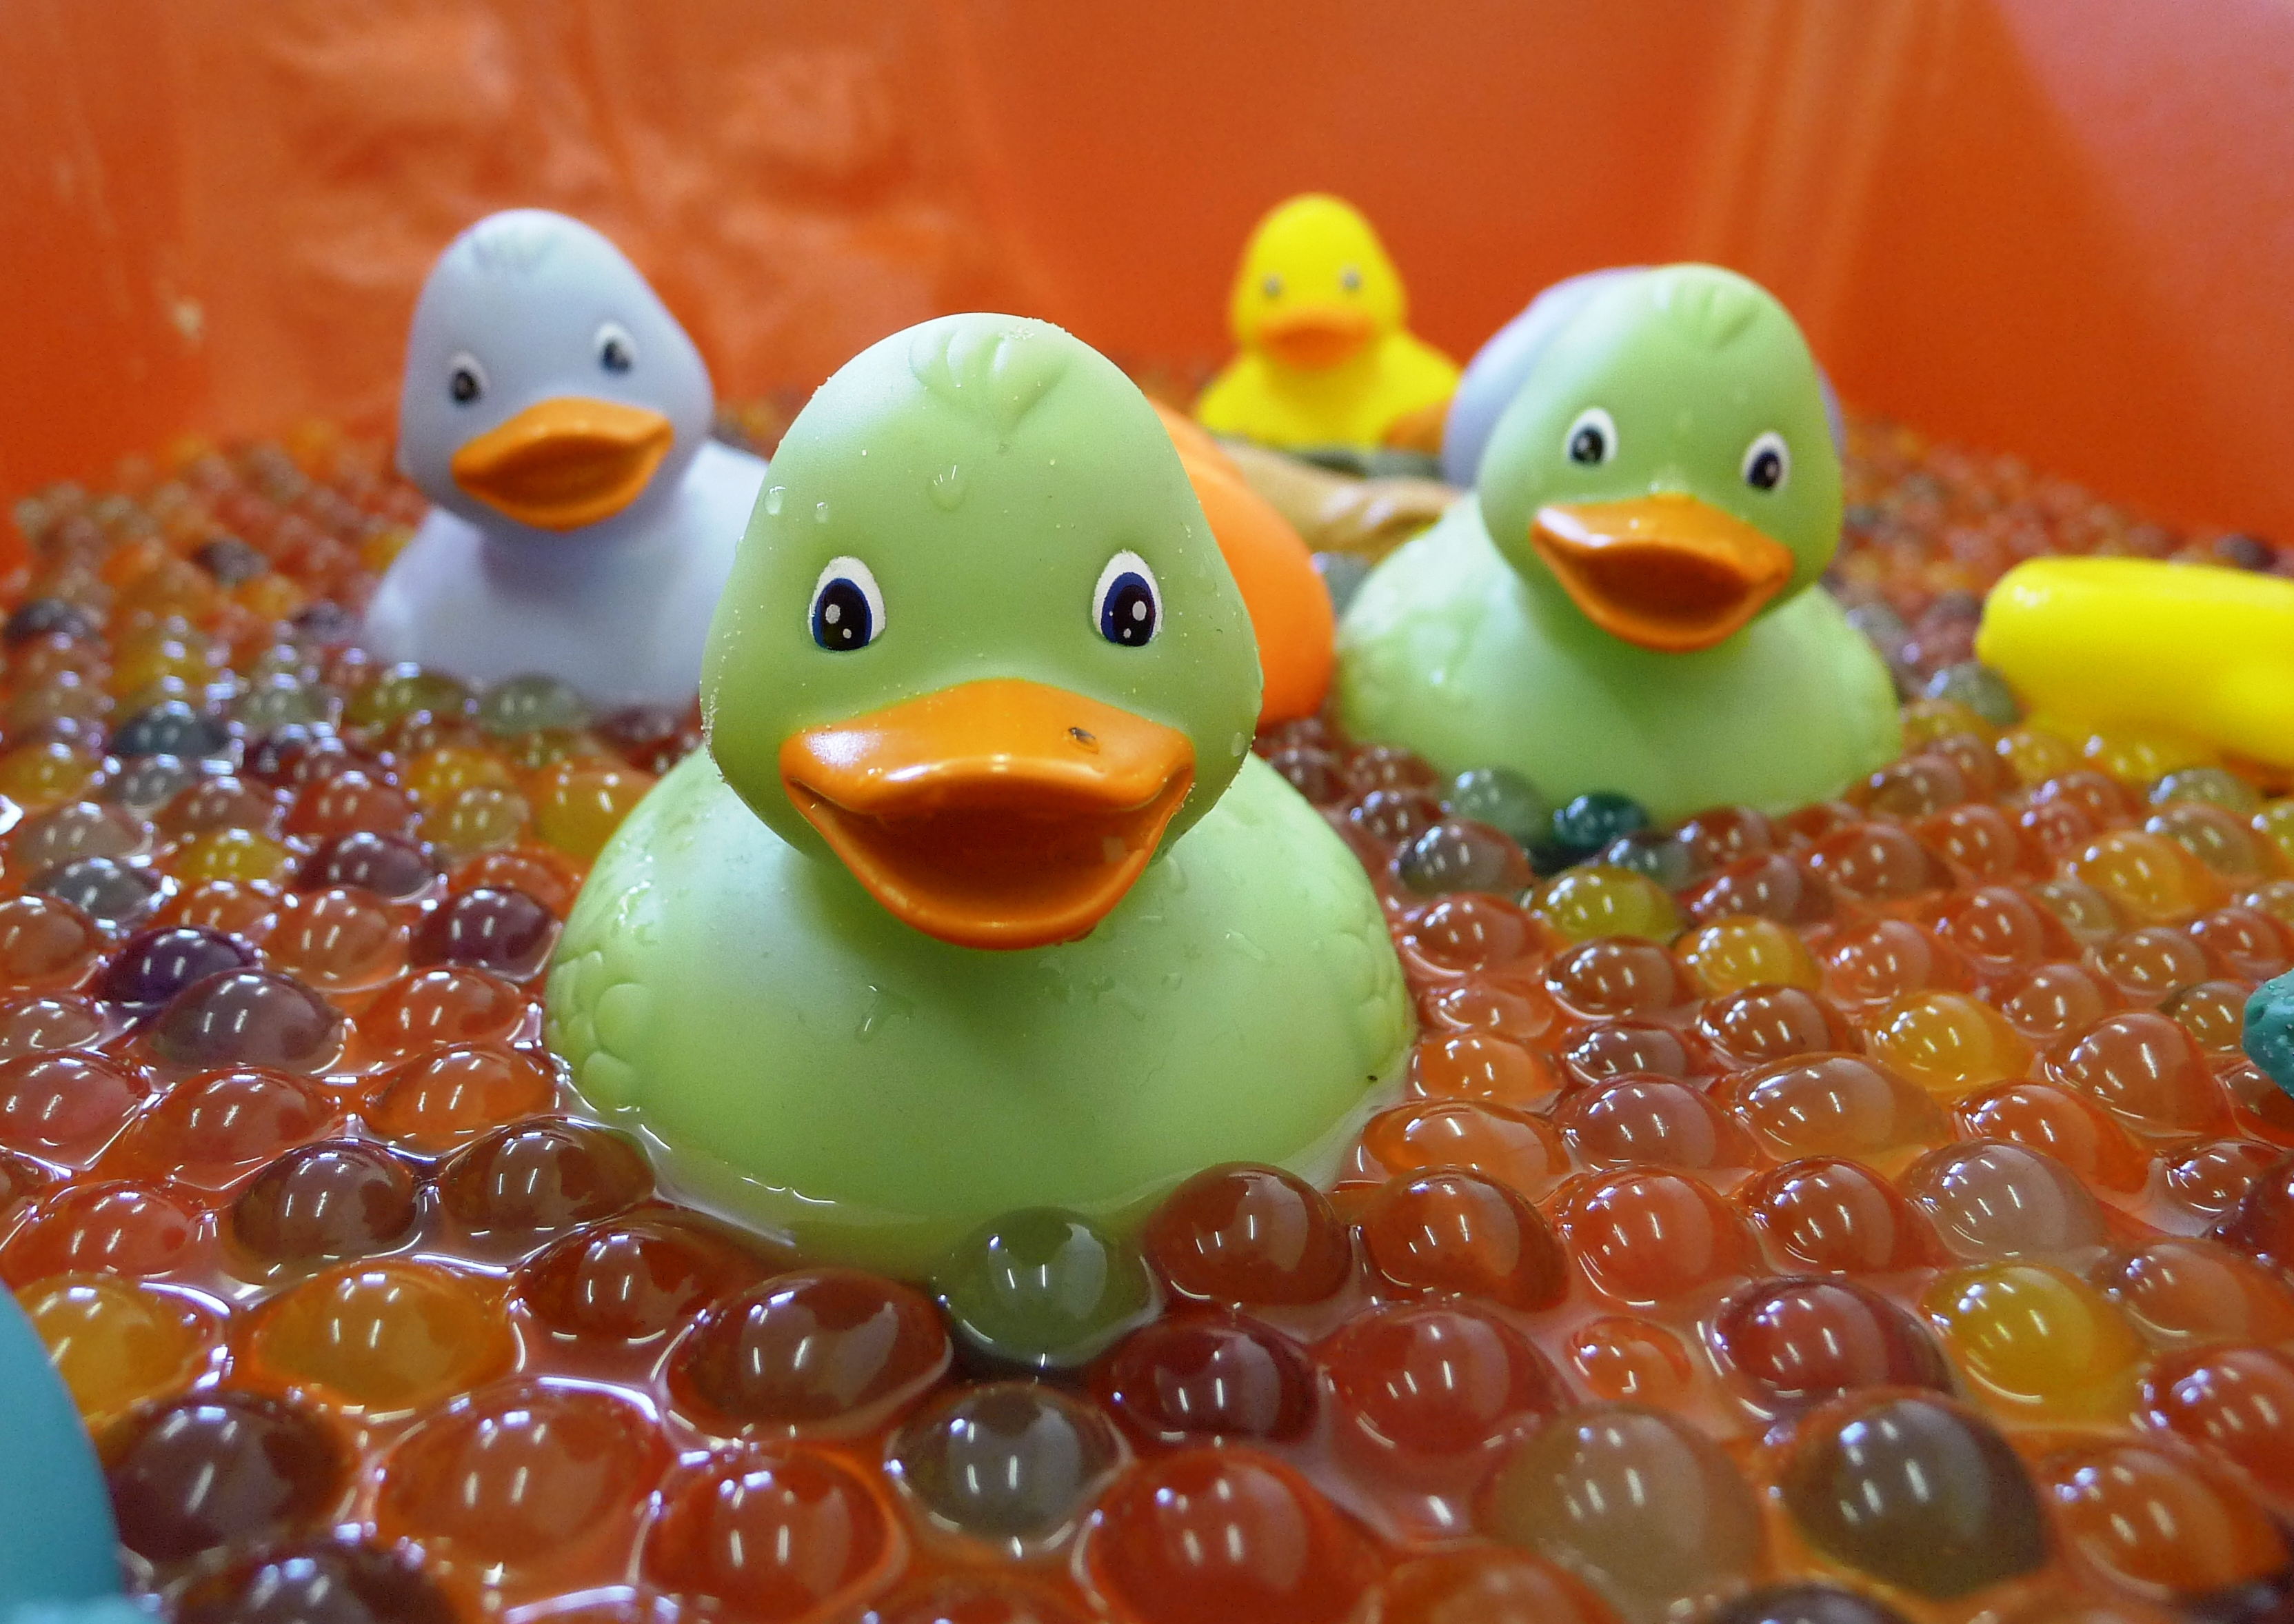 Ducks in water beads